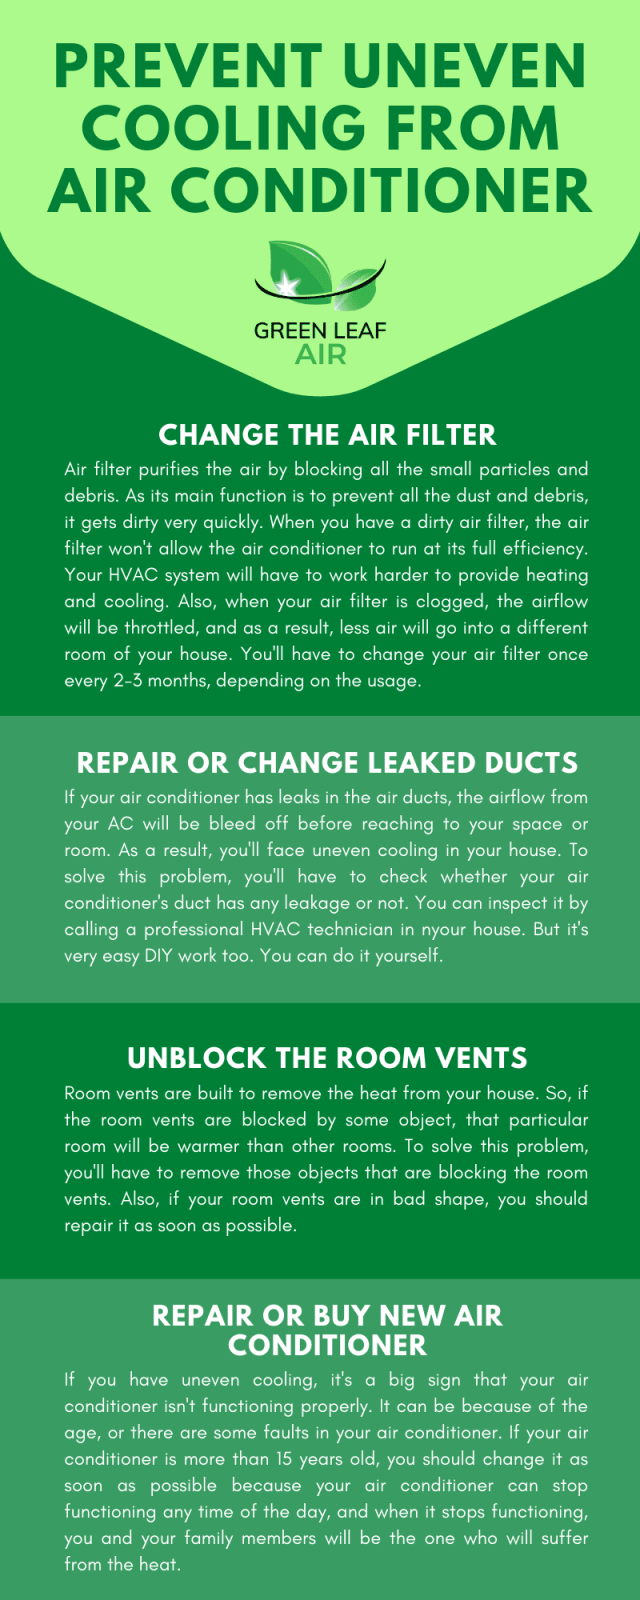 Prevent Uneven Cooling from Air Conditioner